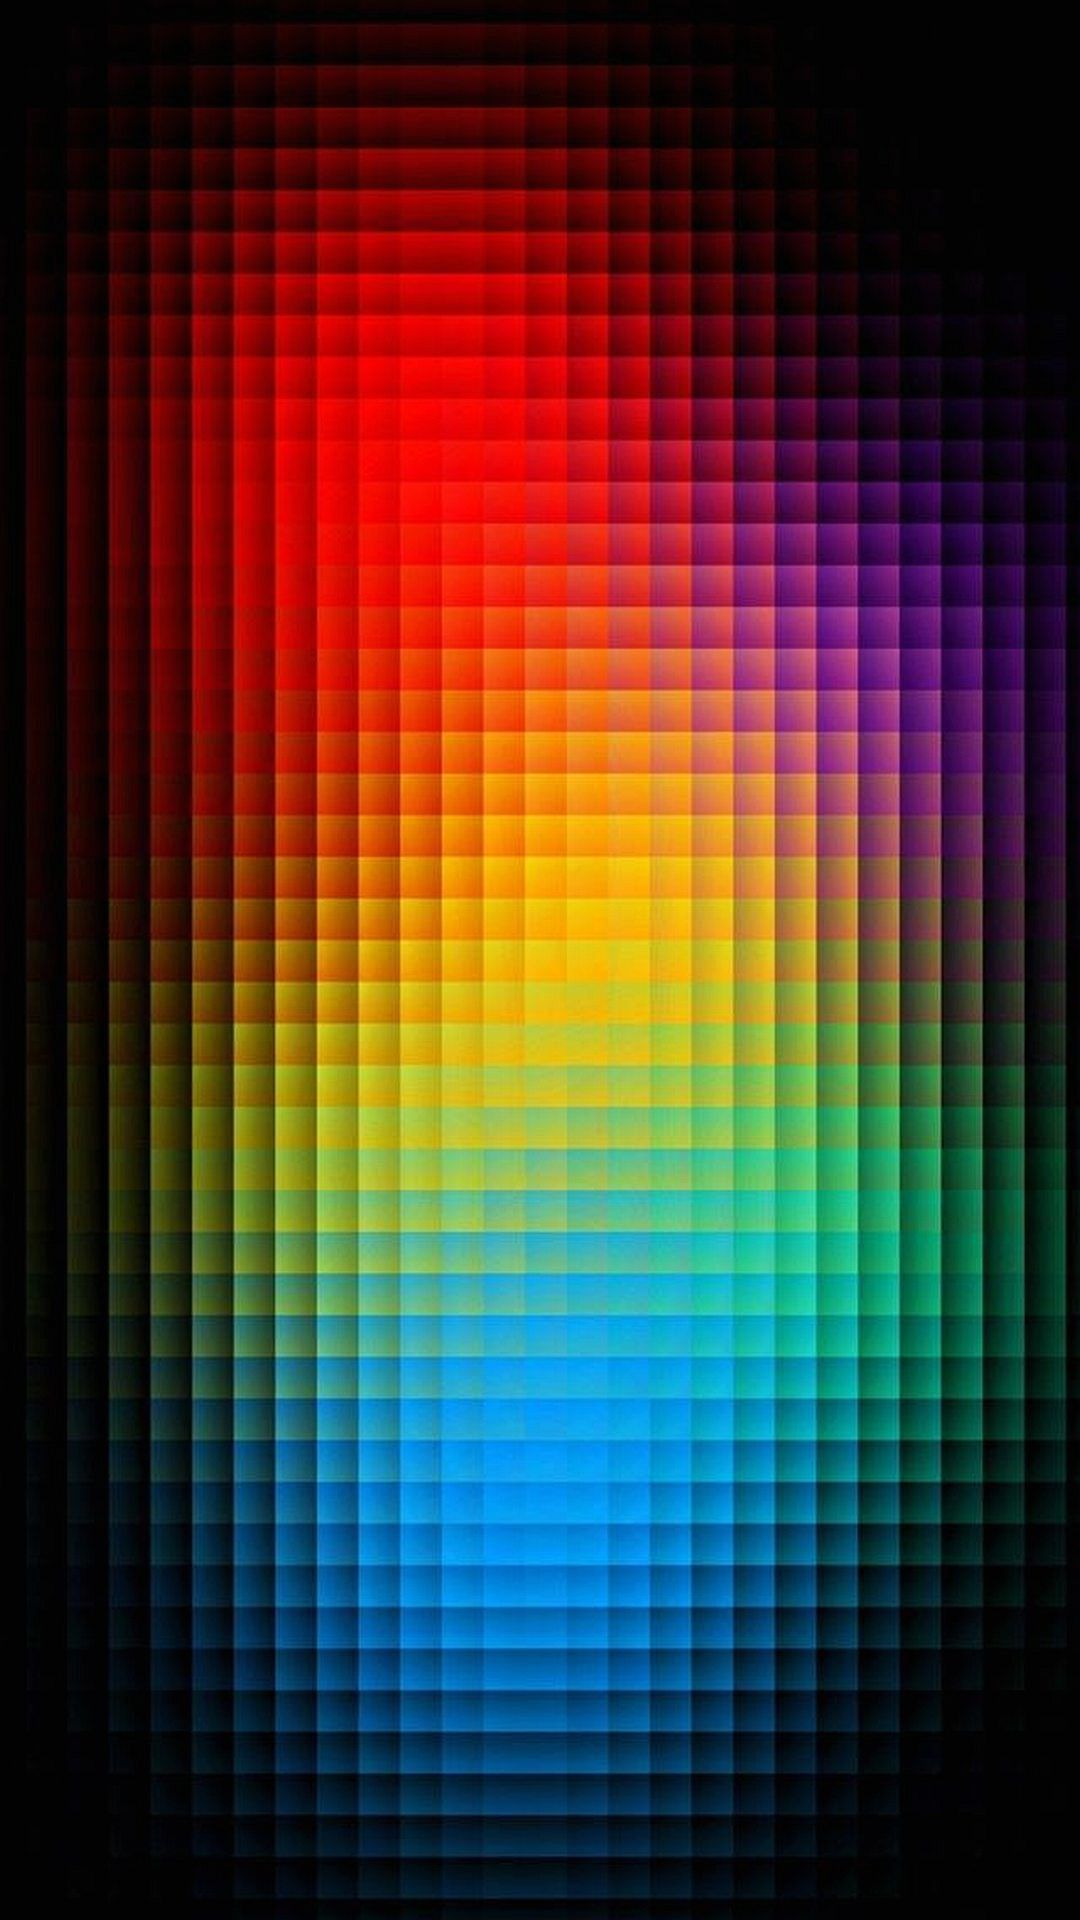 galaxy a7 1080 1920 type wallpaper for wallpaper n 3003 samsung 1080x1920